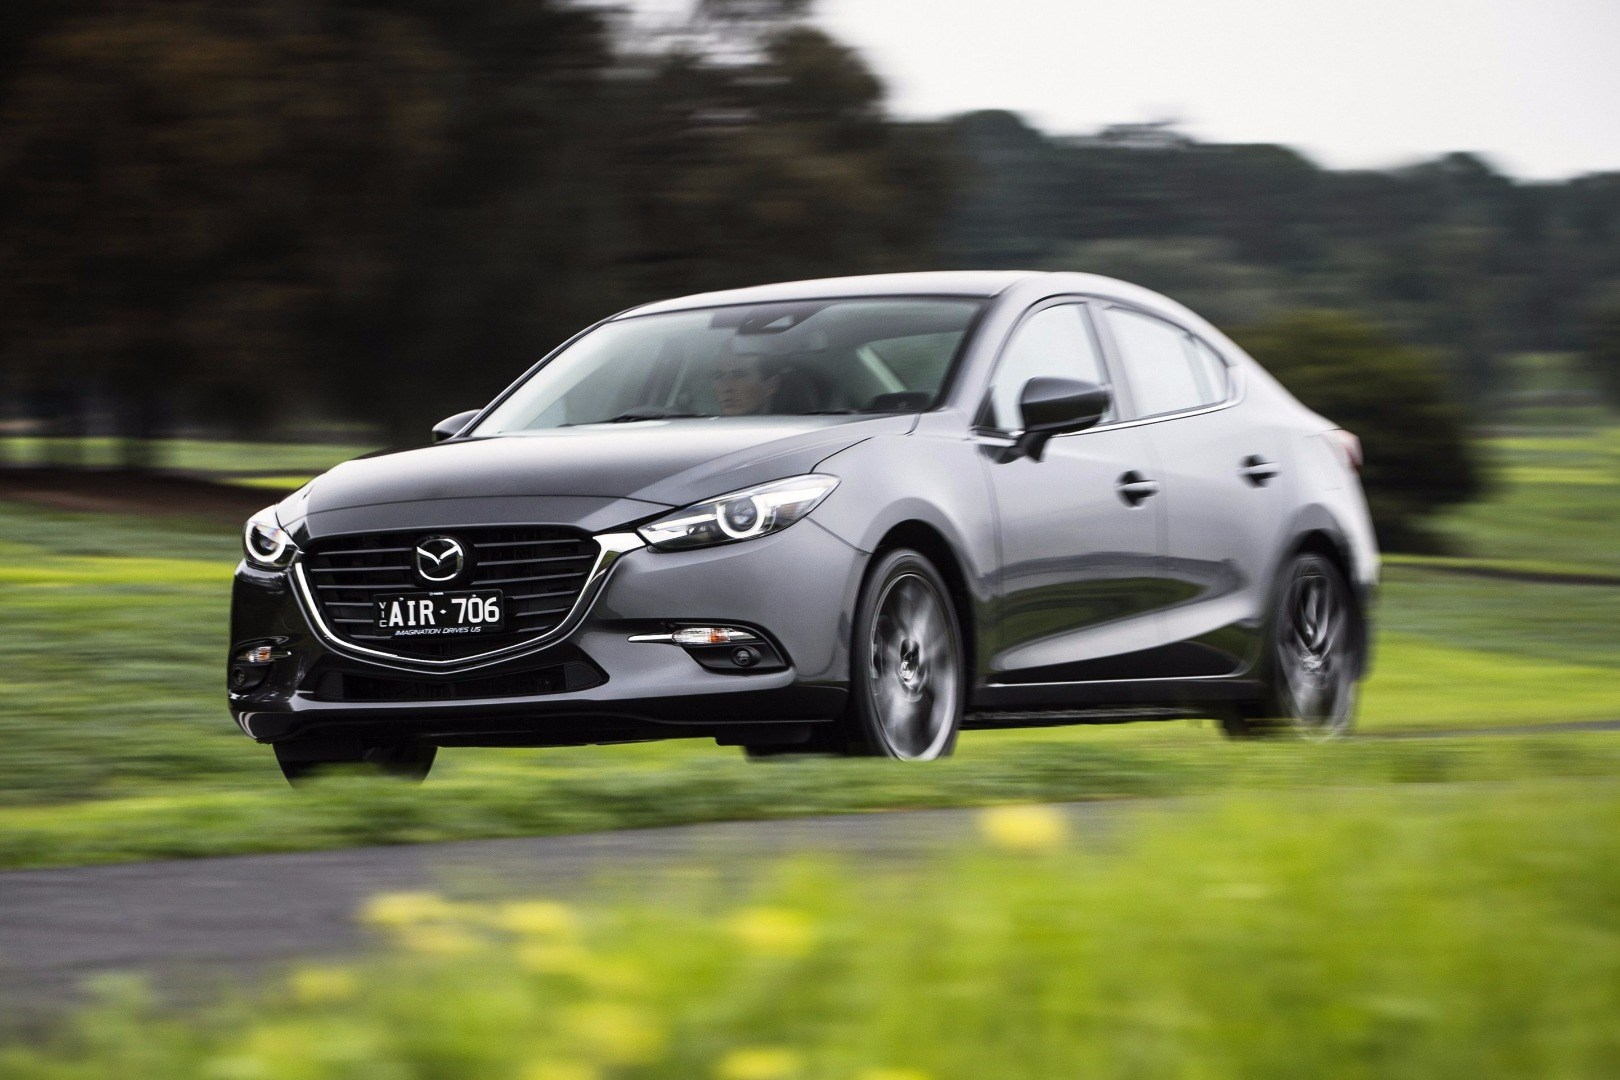 2016 Mazda3 Facelift Get Oz Pricing, Tech And Safety Kit Aplenty Thumbnail